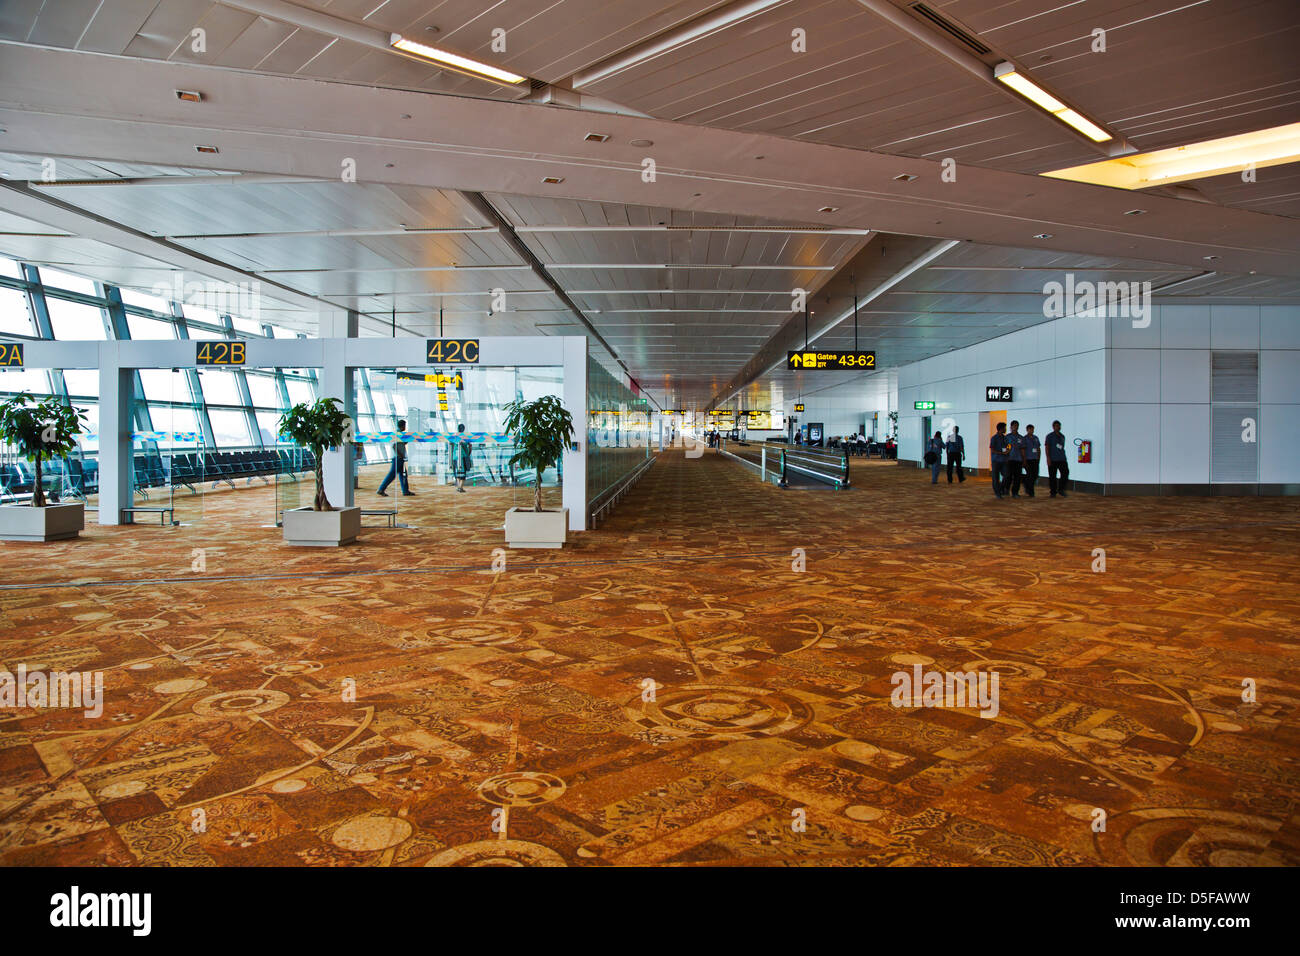 People at an airport terminal, Shimla Airport, Shimla, Himachal Pradesh, India - Stock Image